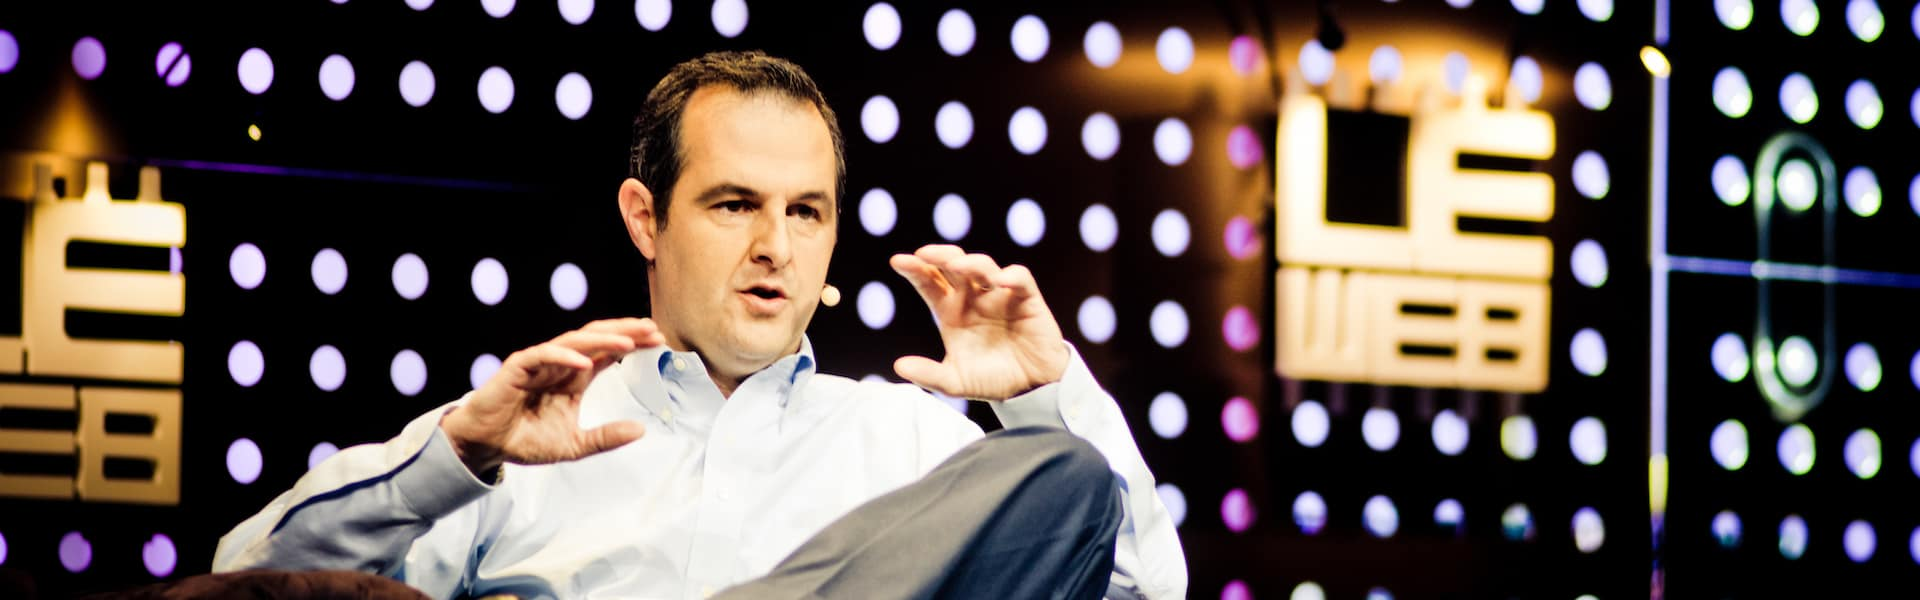 NexThought Monday: Beyond the Lending Club Scandal – Why the future of marketplace lending is still bright in India and other emerging markets, on NextBillion.net.